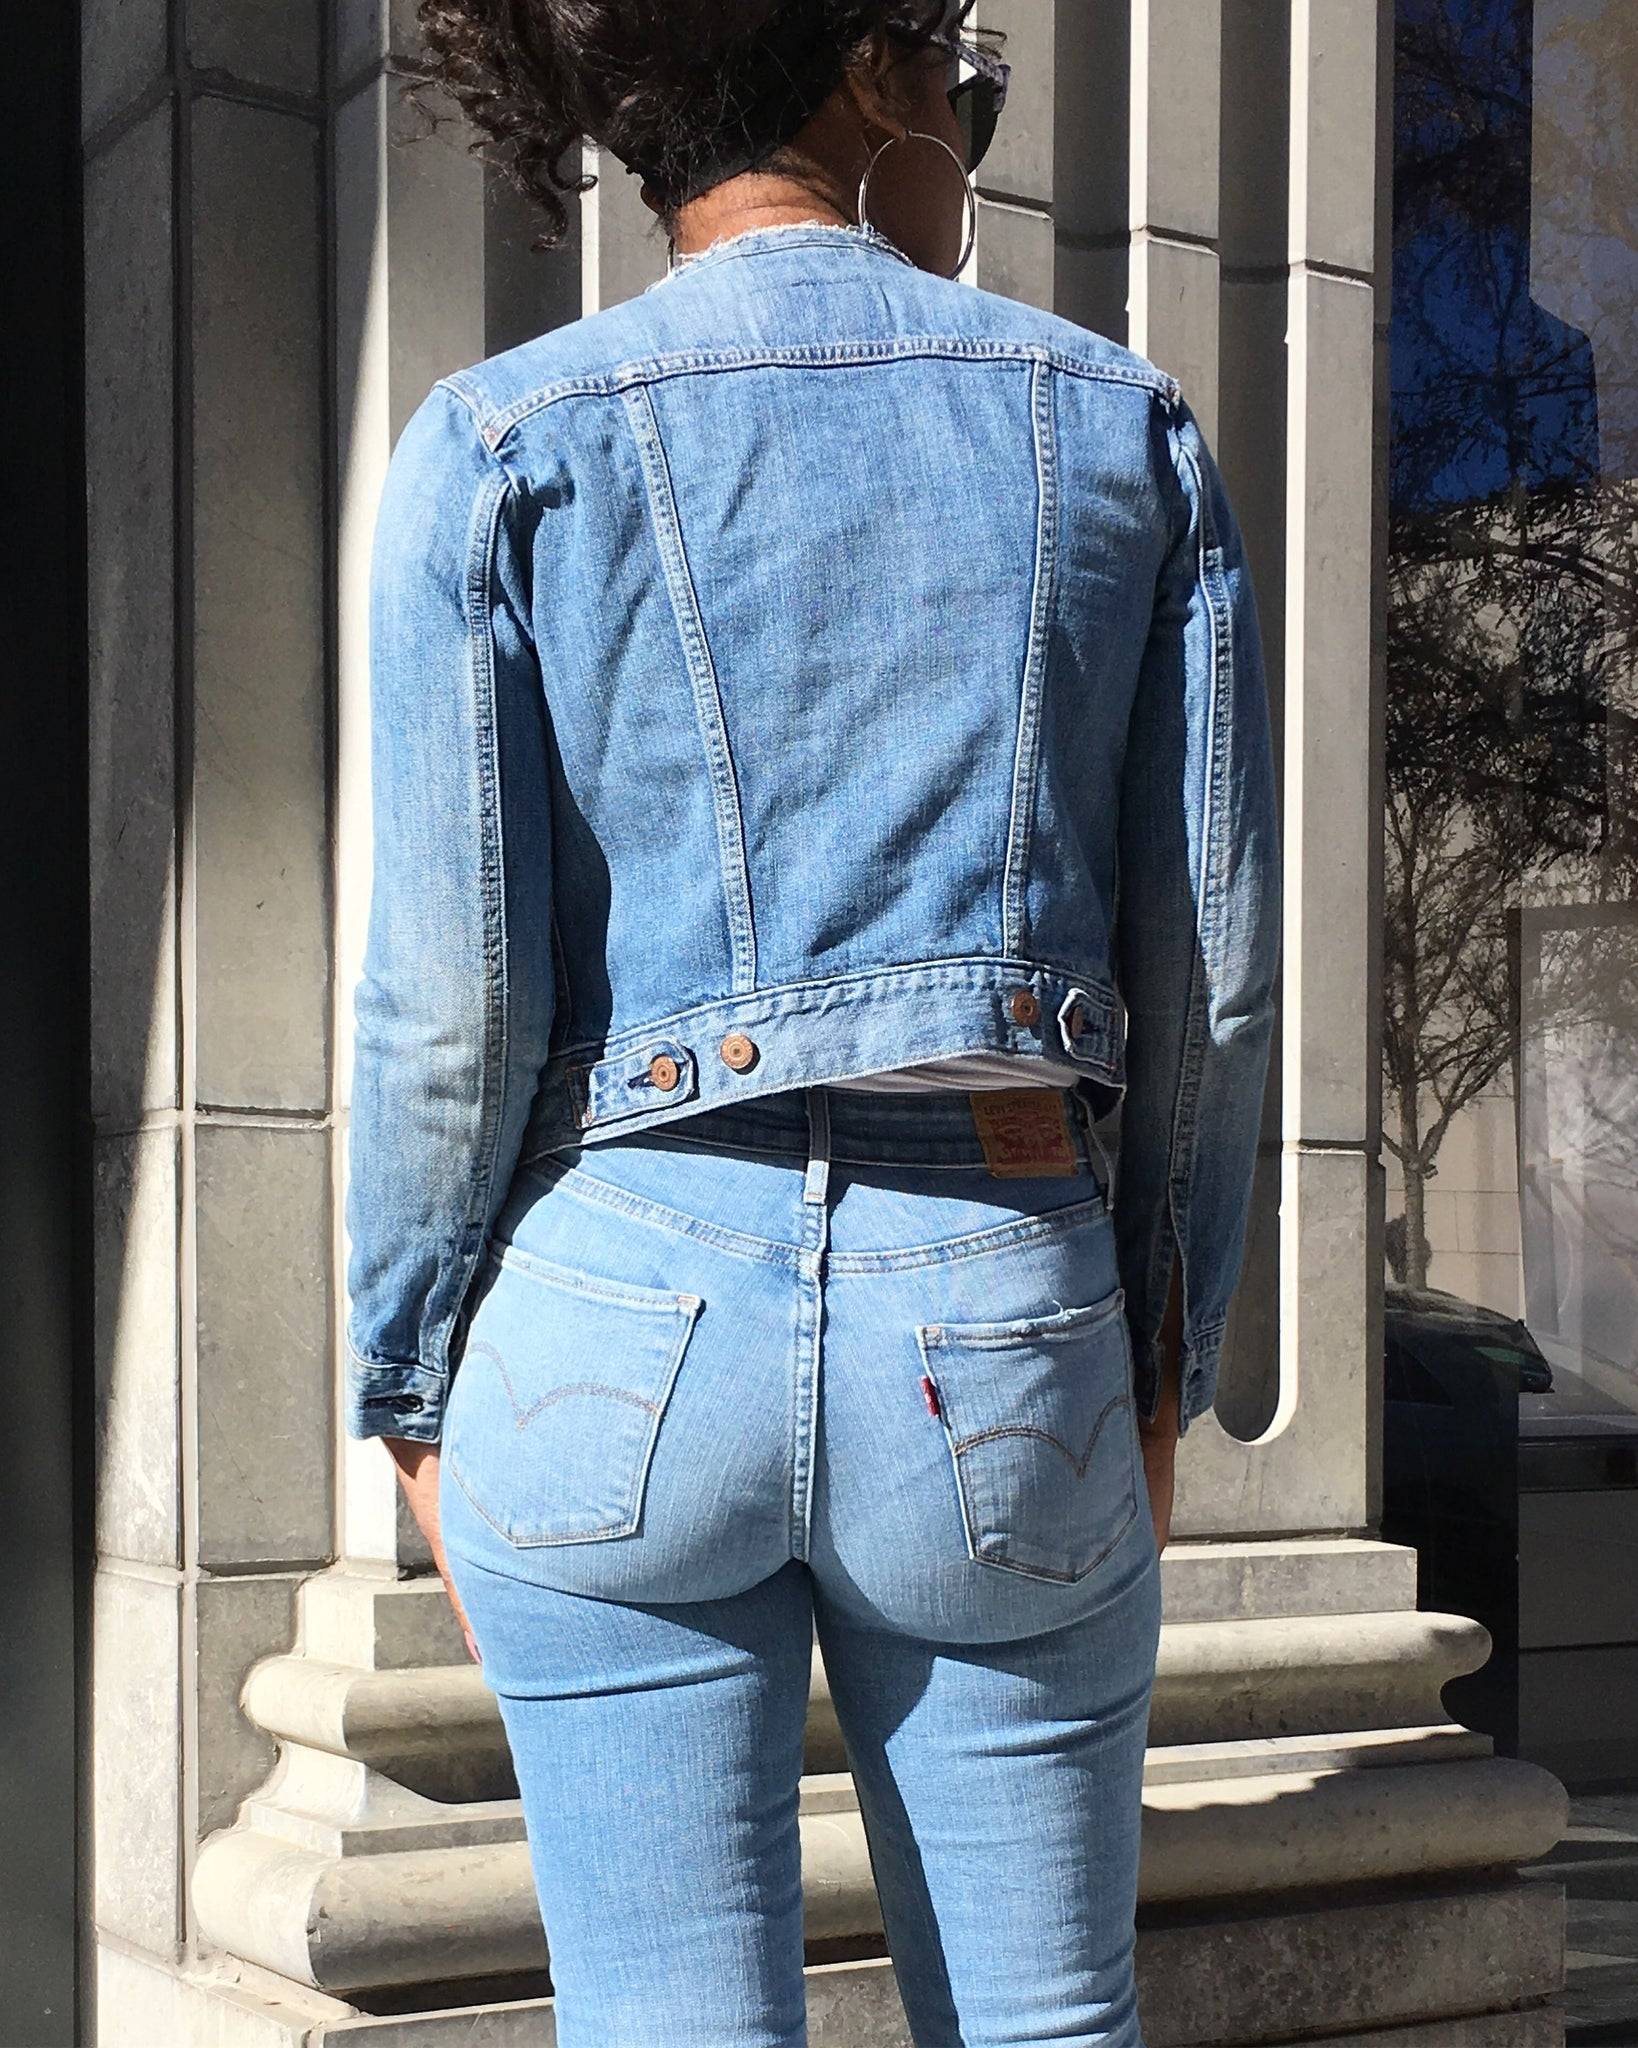 Custom Jeweled Levi's Jean Jacket